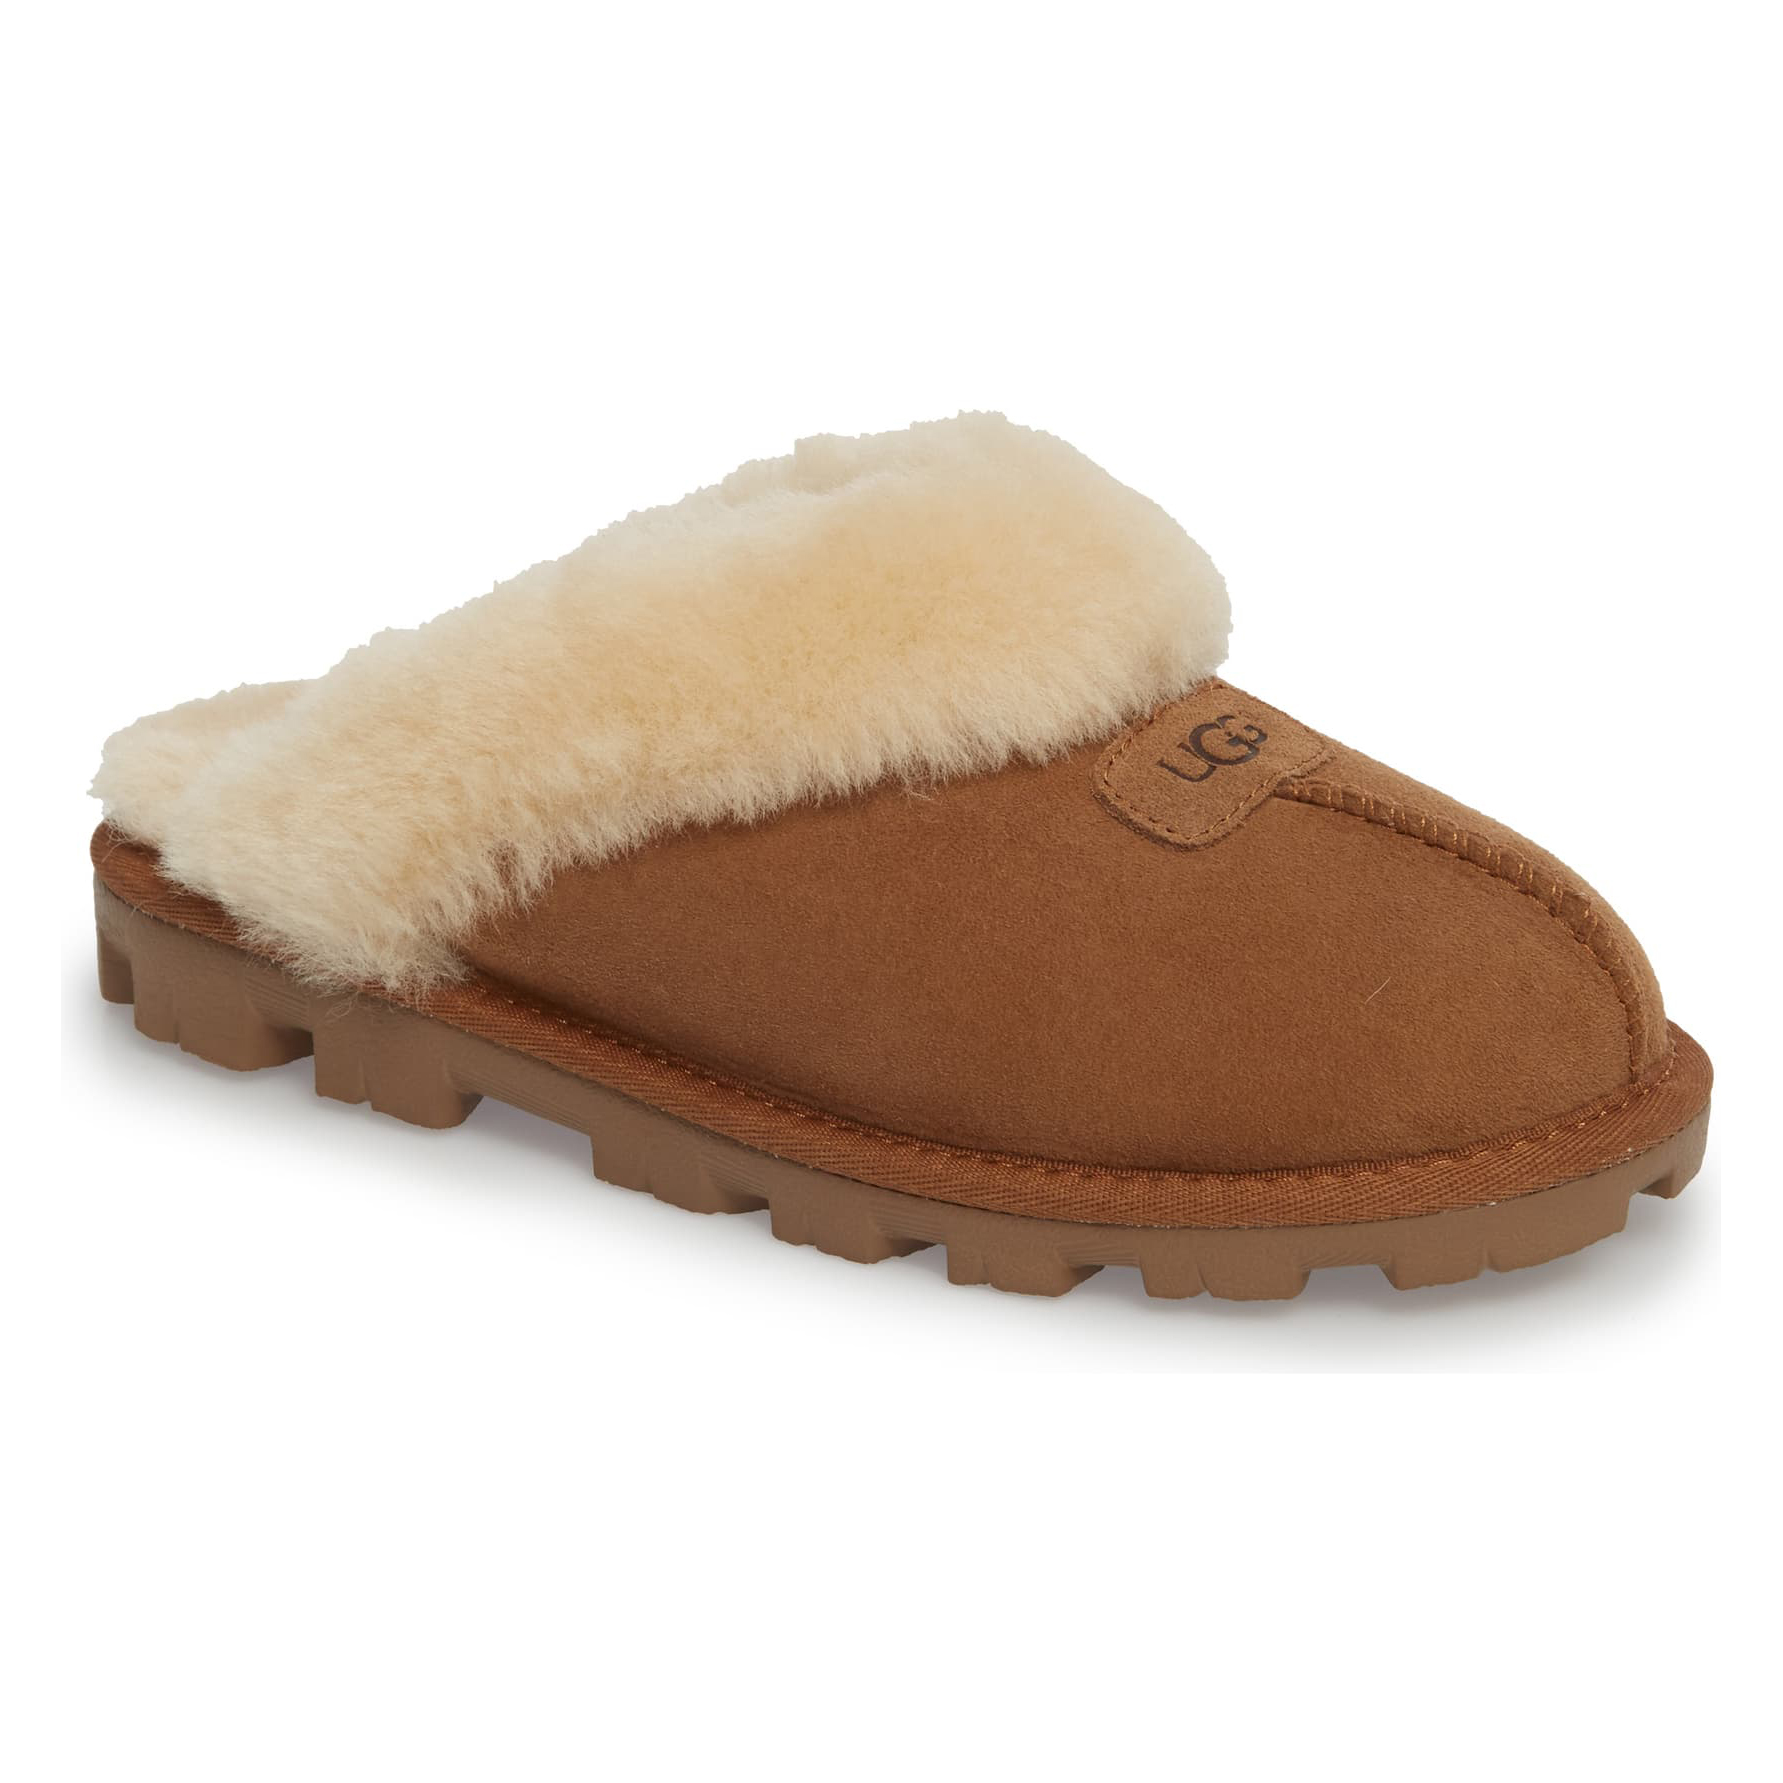 Ugg Genuine Shearling Slipper in Chestnut